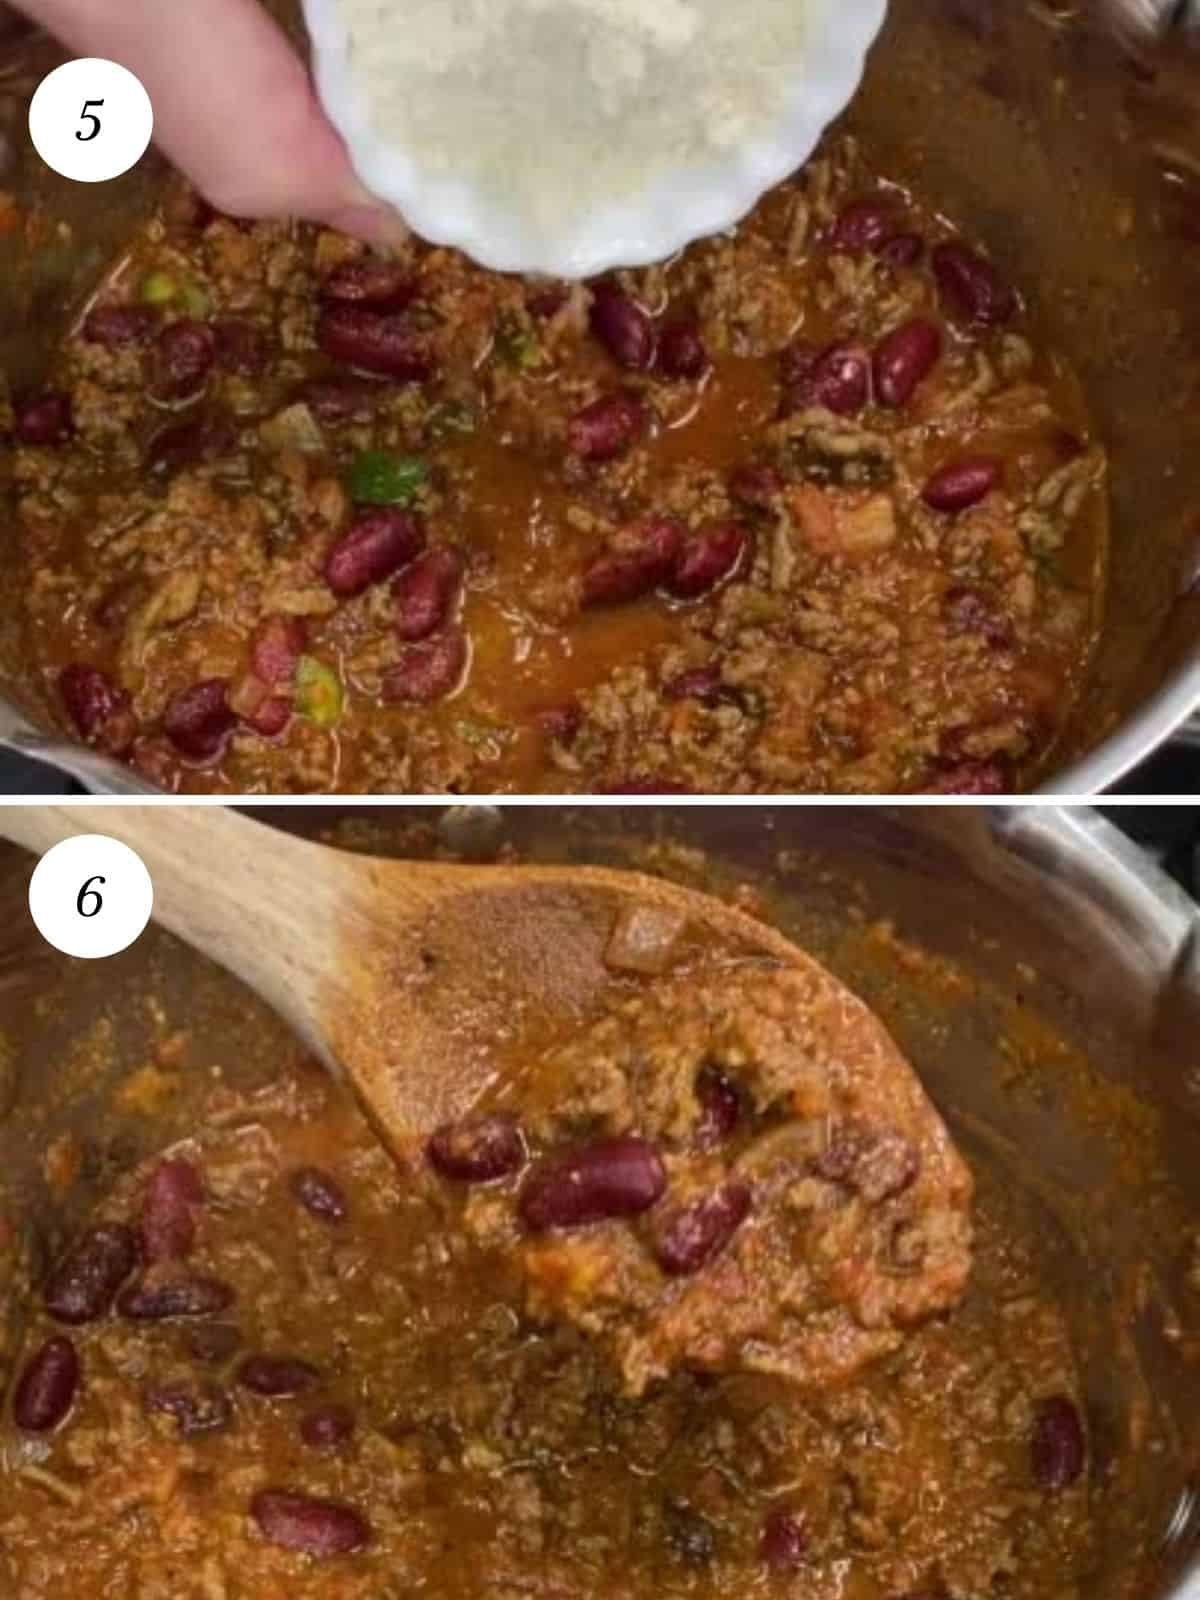 stir in mesa to chili after heating, all to simmer for a few minutes to thicken